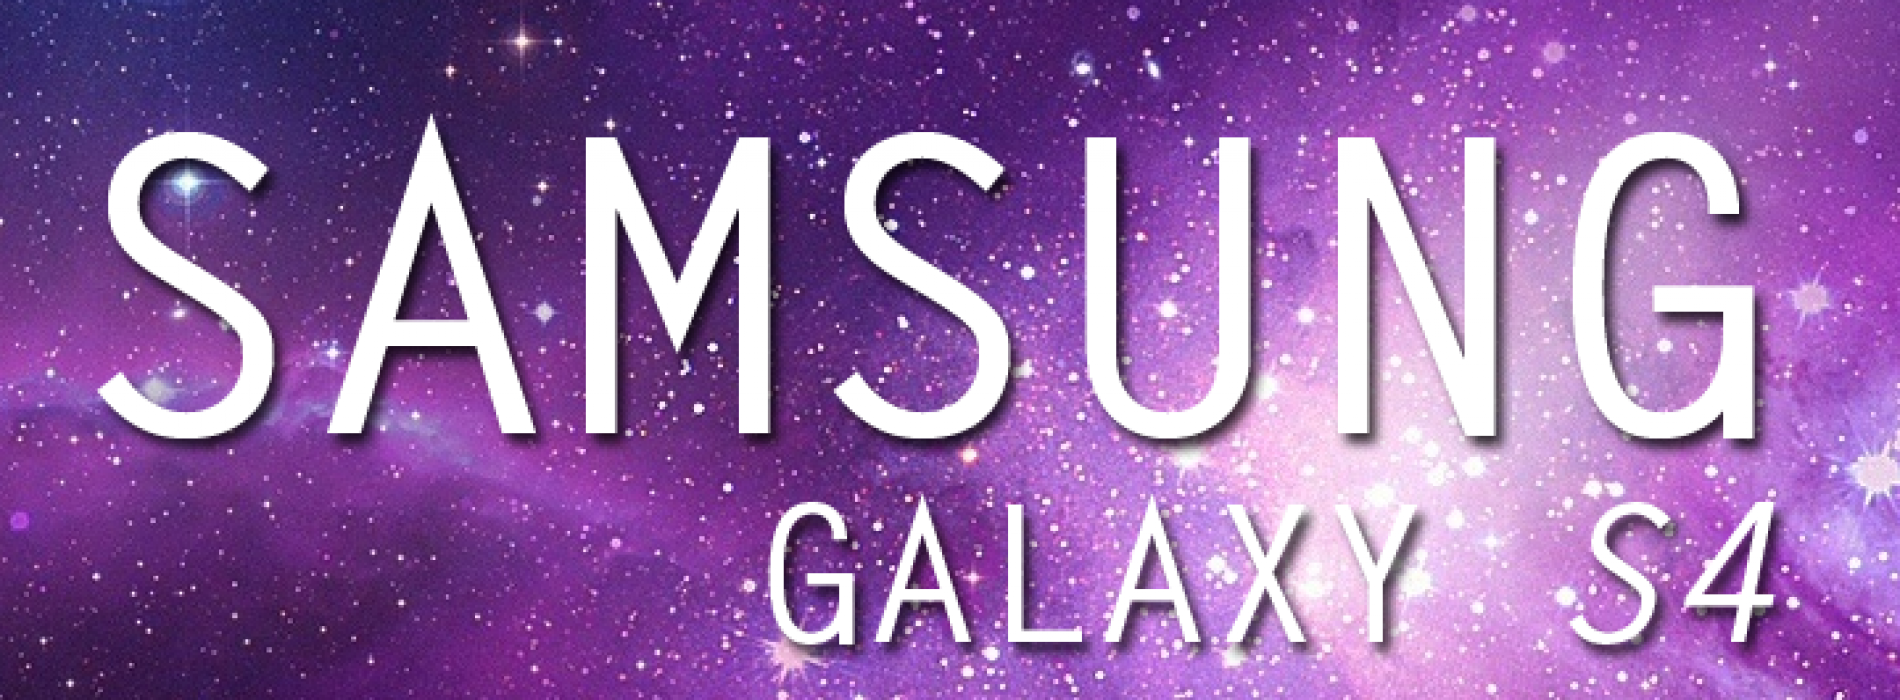 Samsung Galaxy S4 debut now rumored for March 14